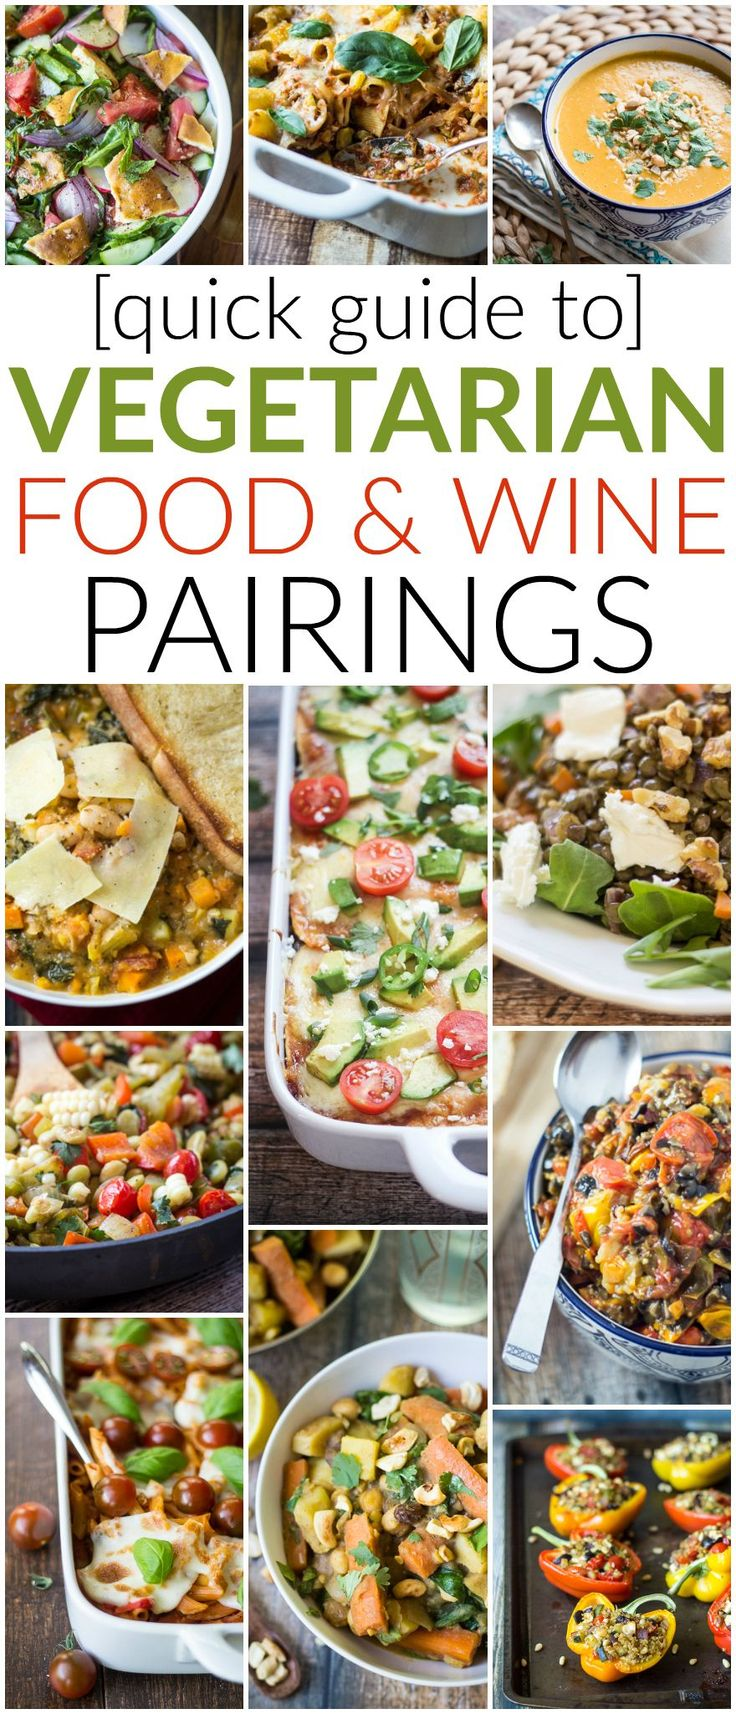 Red wine with beef, white wine with fish, right? What about vegetarian recipes? Check out this quick guide to Vegetarian Wine Pairings for recommendations on how to pair wine with classic (and exotic!) vegetarian soups, salads, dinners, lunches, and everything in between!